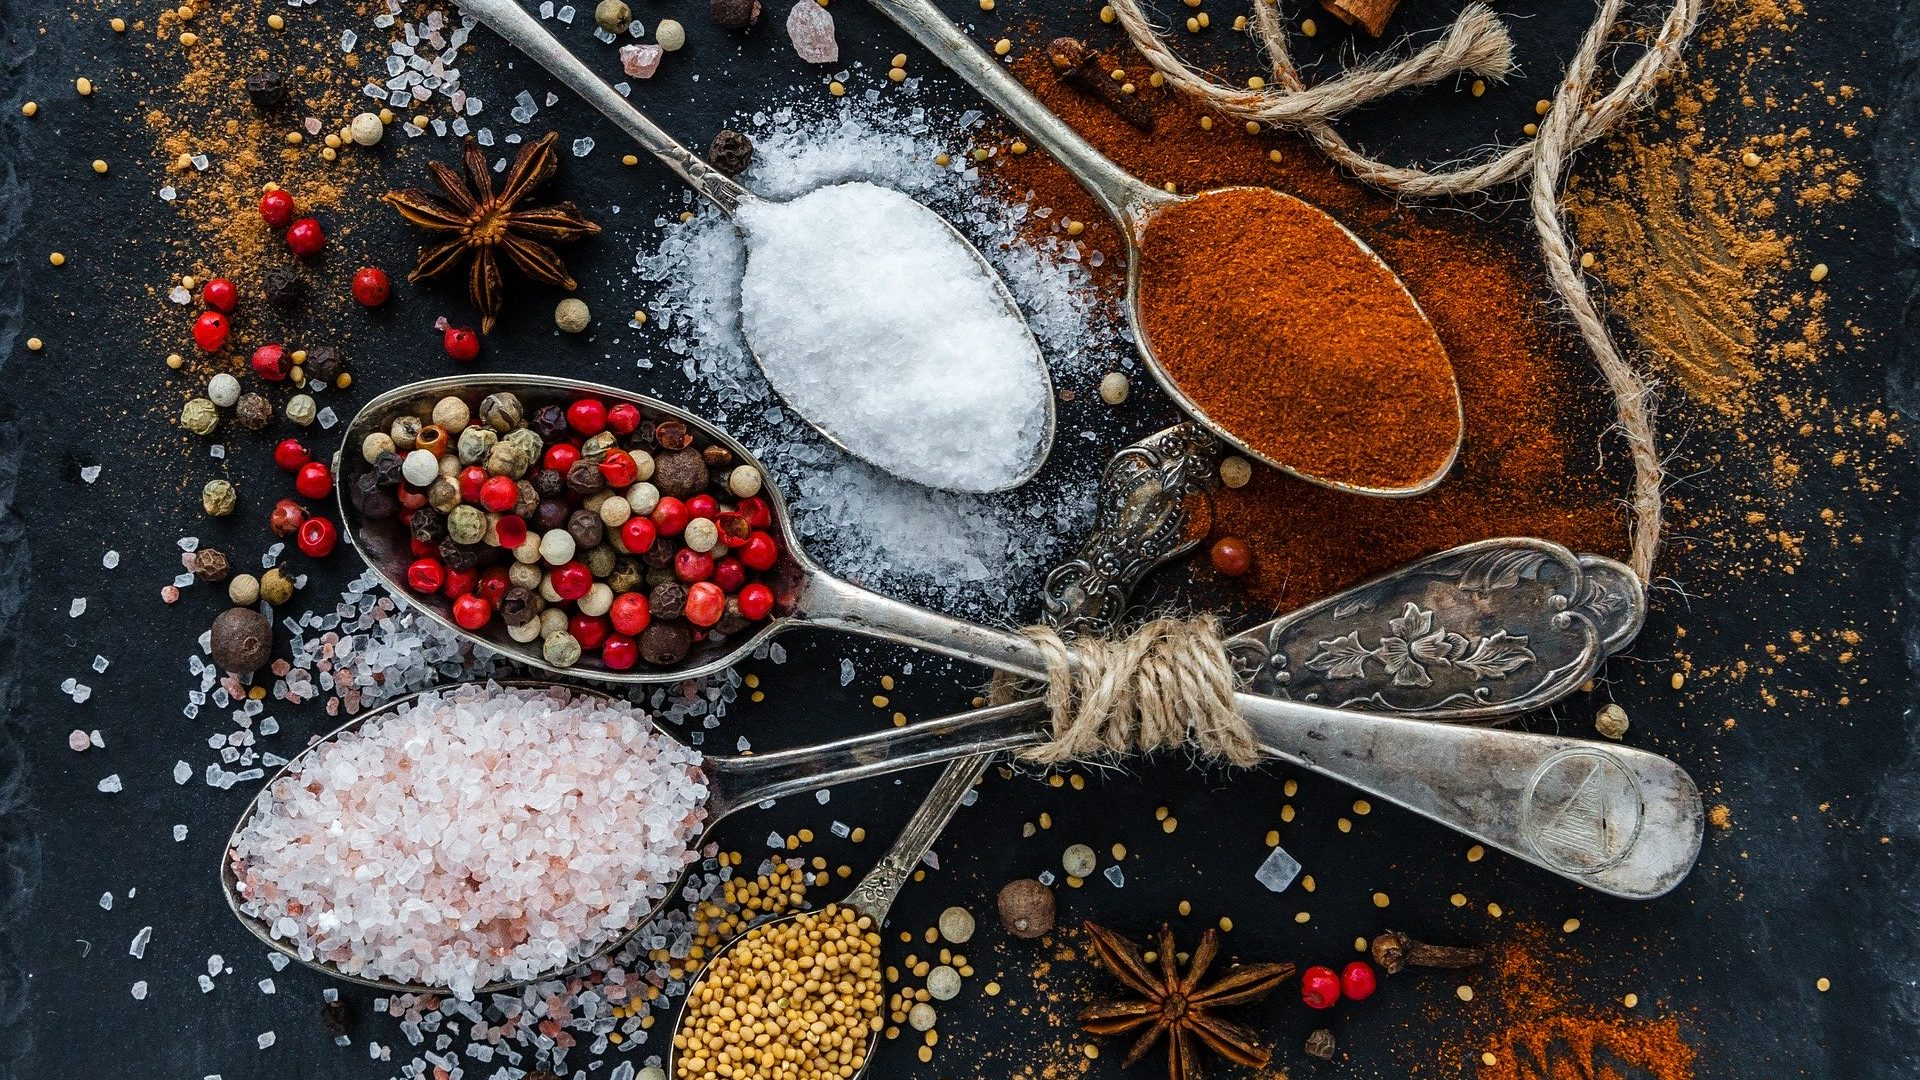 Image: An array of colorful spices on spoons